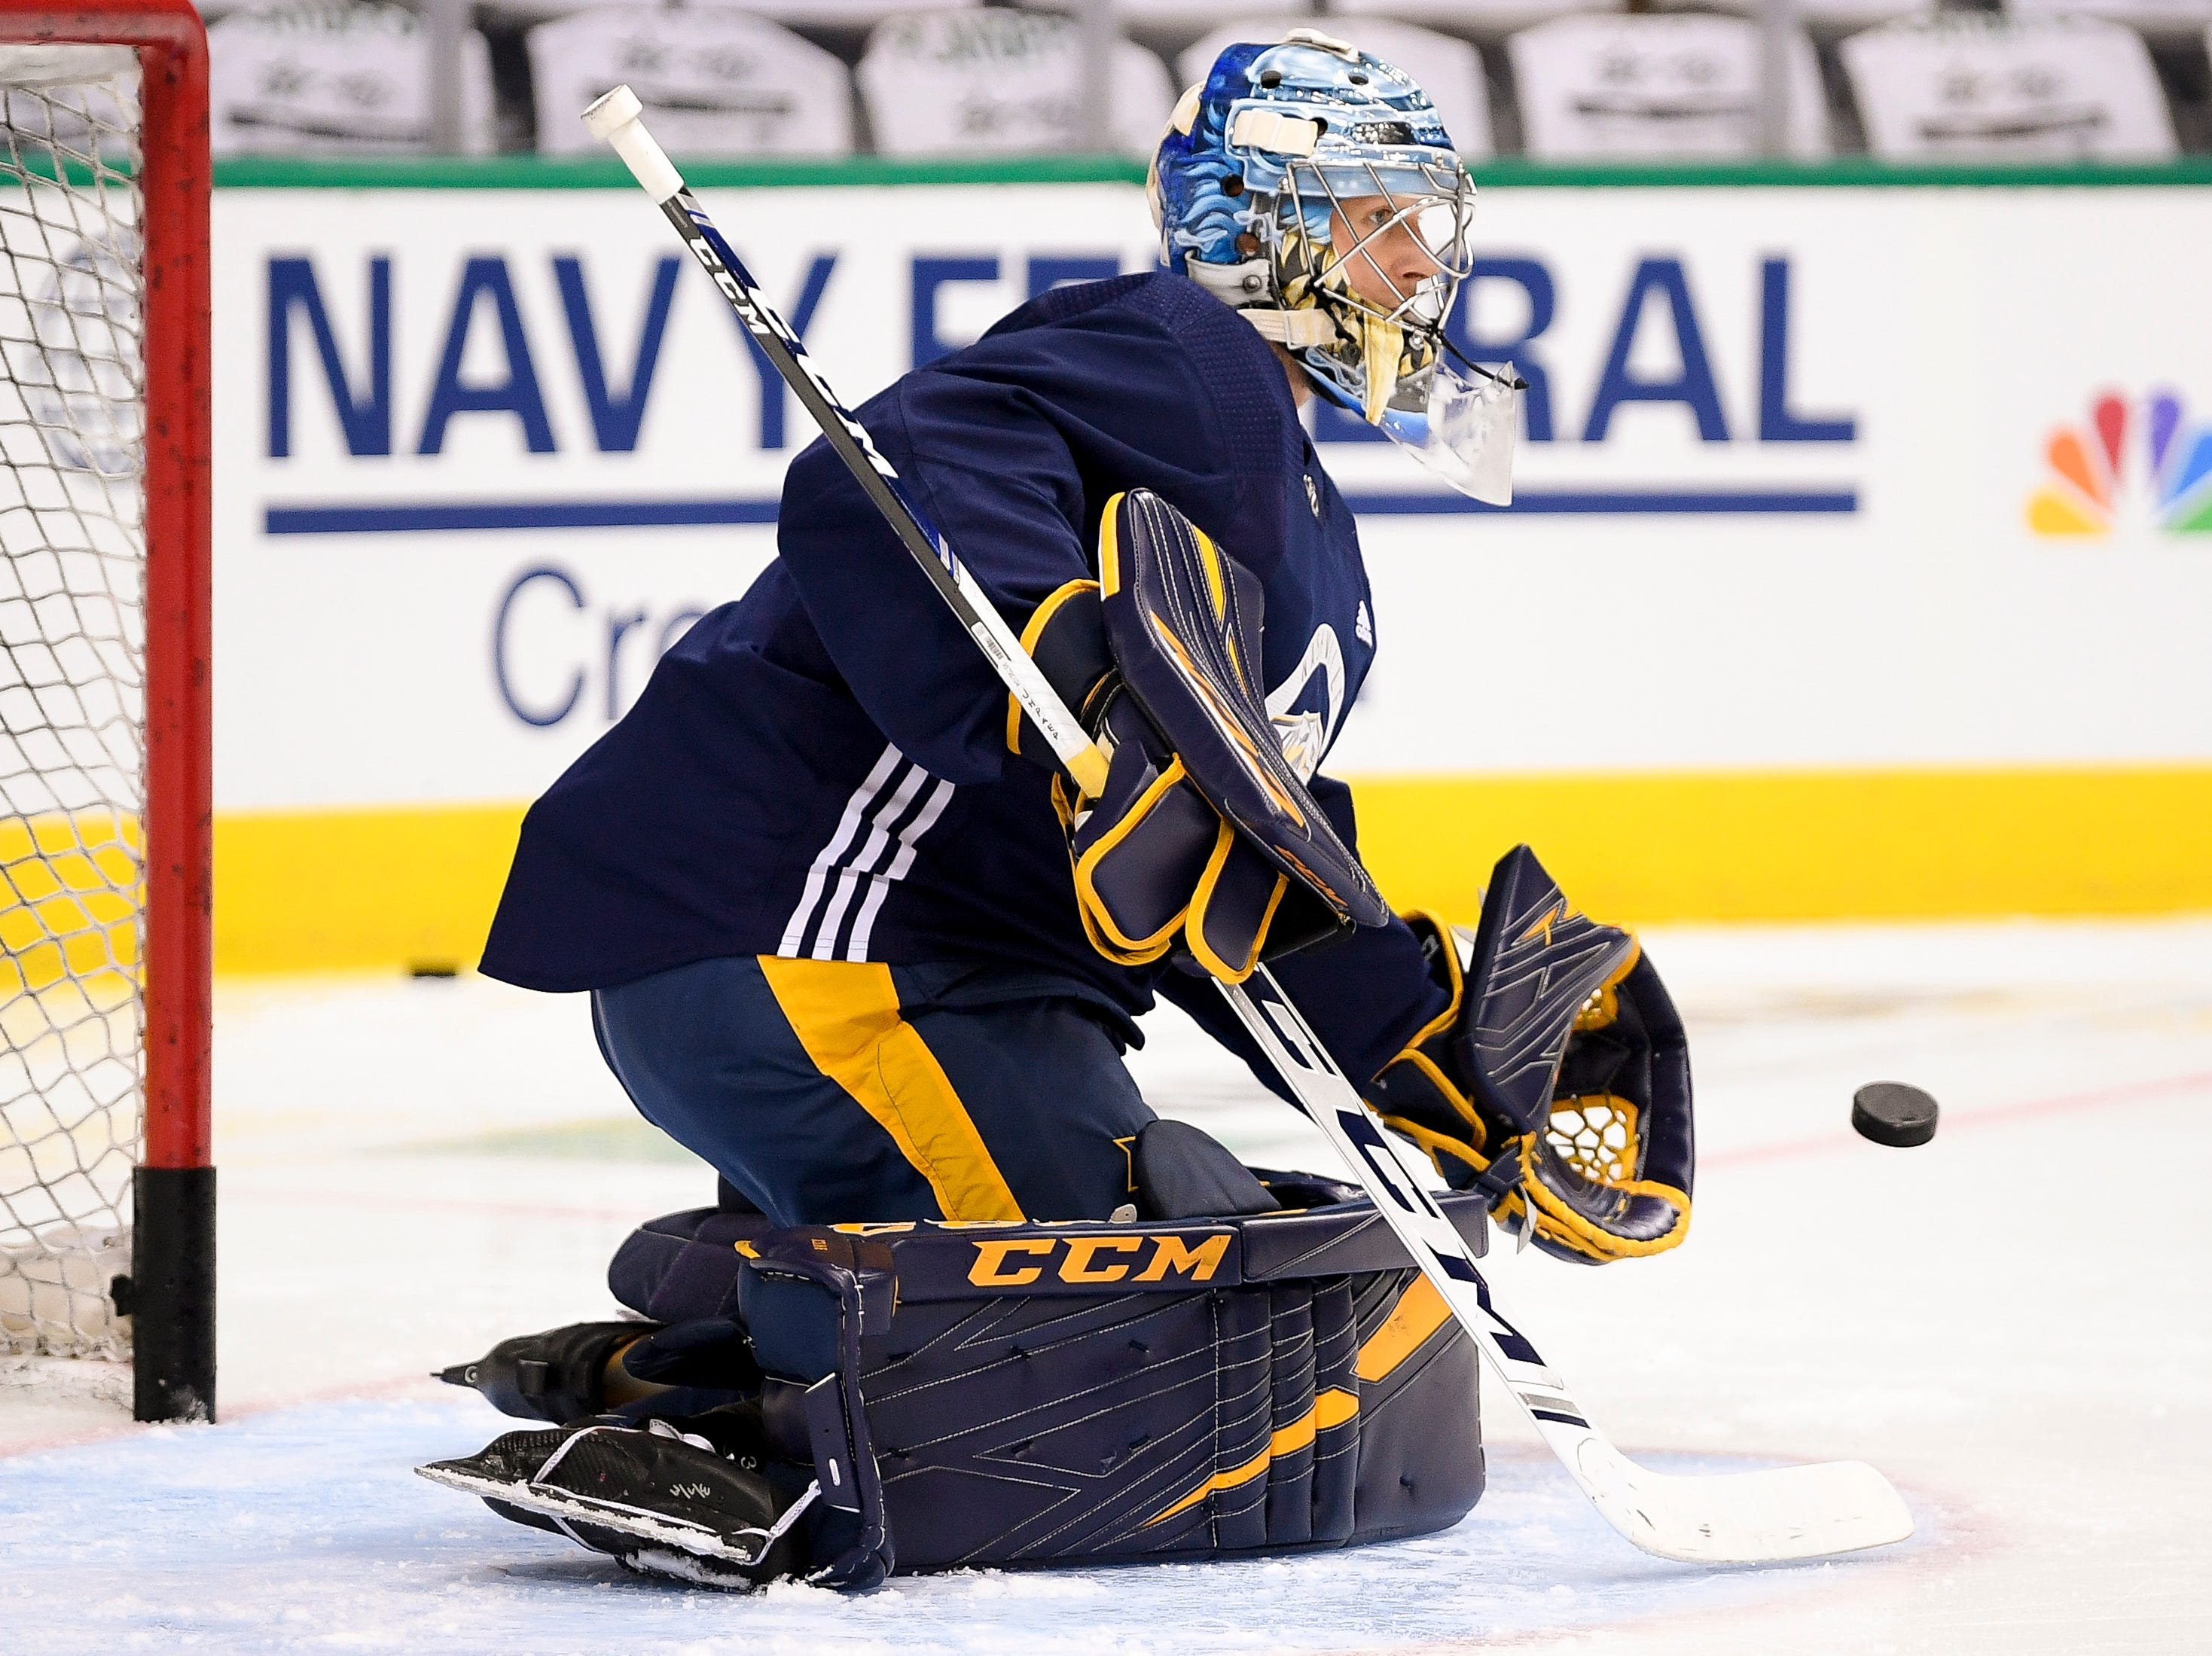 Nashville Predators goaltender Pekka Rinne (35) runs drills during practice before the divisional semifinal game at the American Airlines Center in Dallas, Texas., Monday, April 15, 2019.